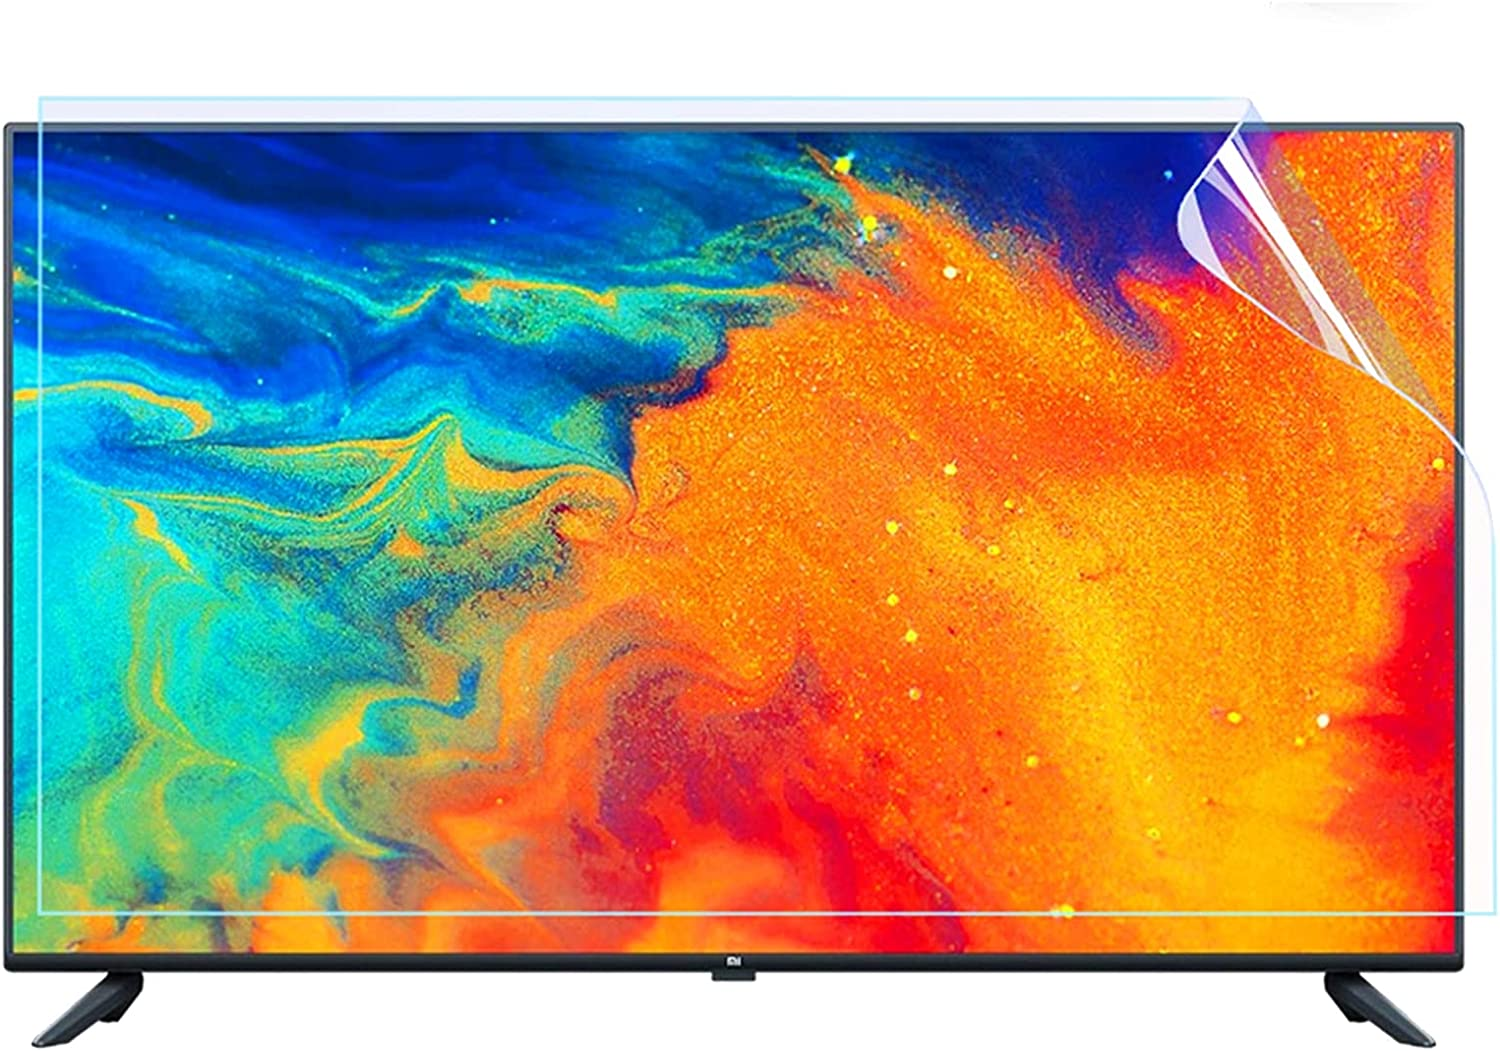 Anti-Scratch TV Screen Protector Max 83% OFF for - Frosted Topics on TV Anti-Glare 32-75